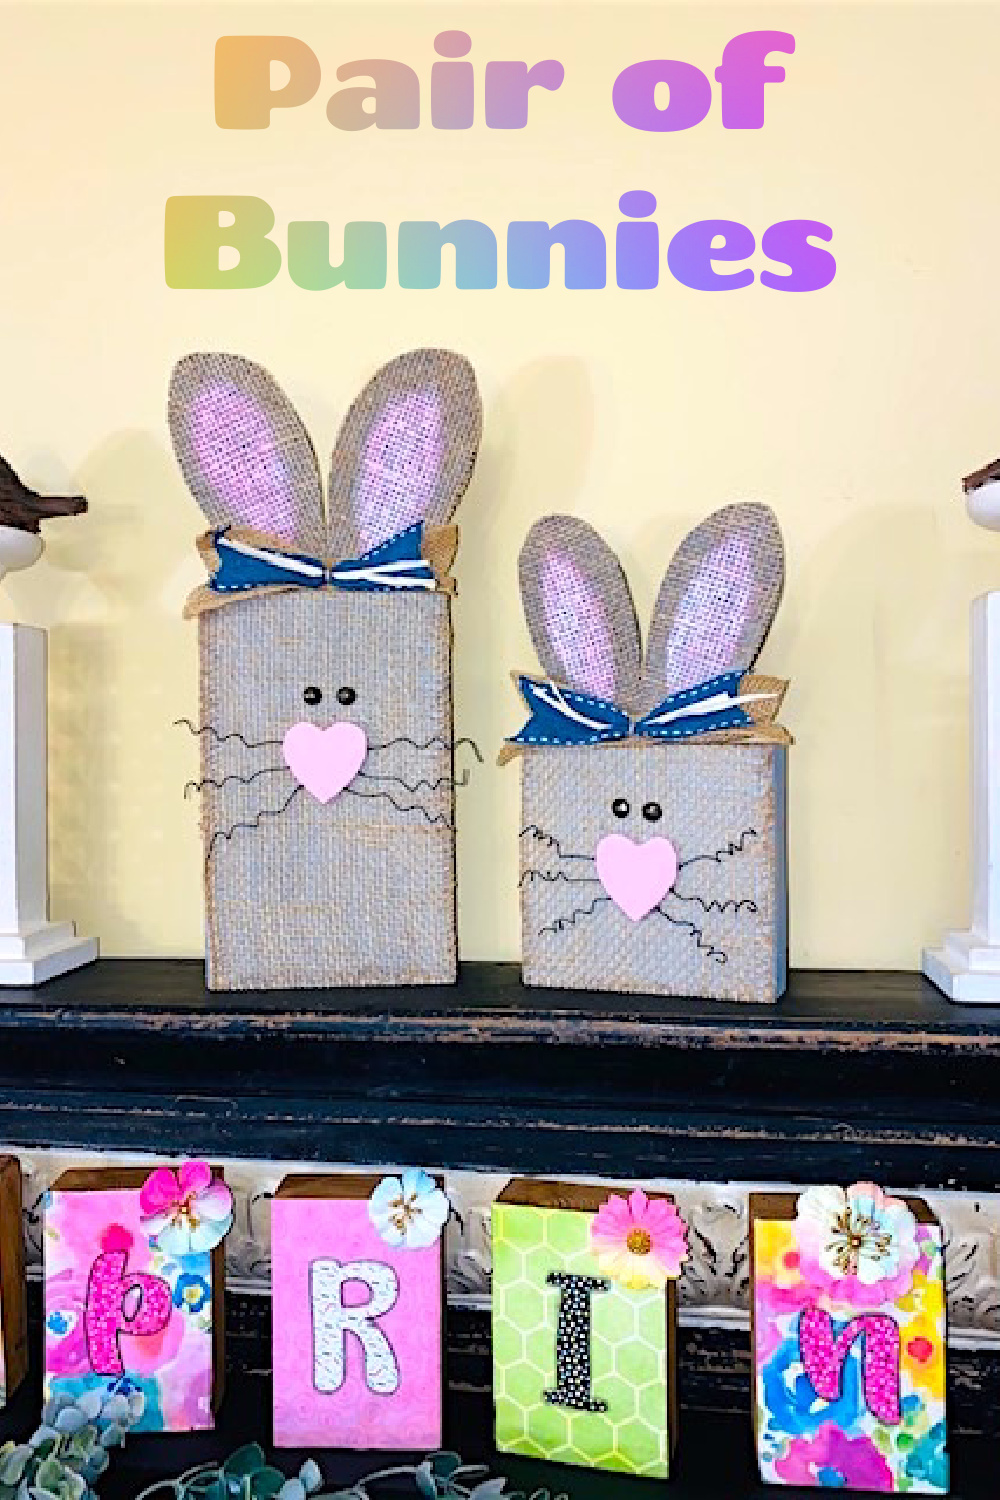 Wooden 2x6's with Burlap on top. They have ears made from thin wood.  Eyes are upholstery tacks and whiskers are made from curled wire.  The nose is a heart shaped piece of wood.